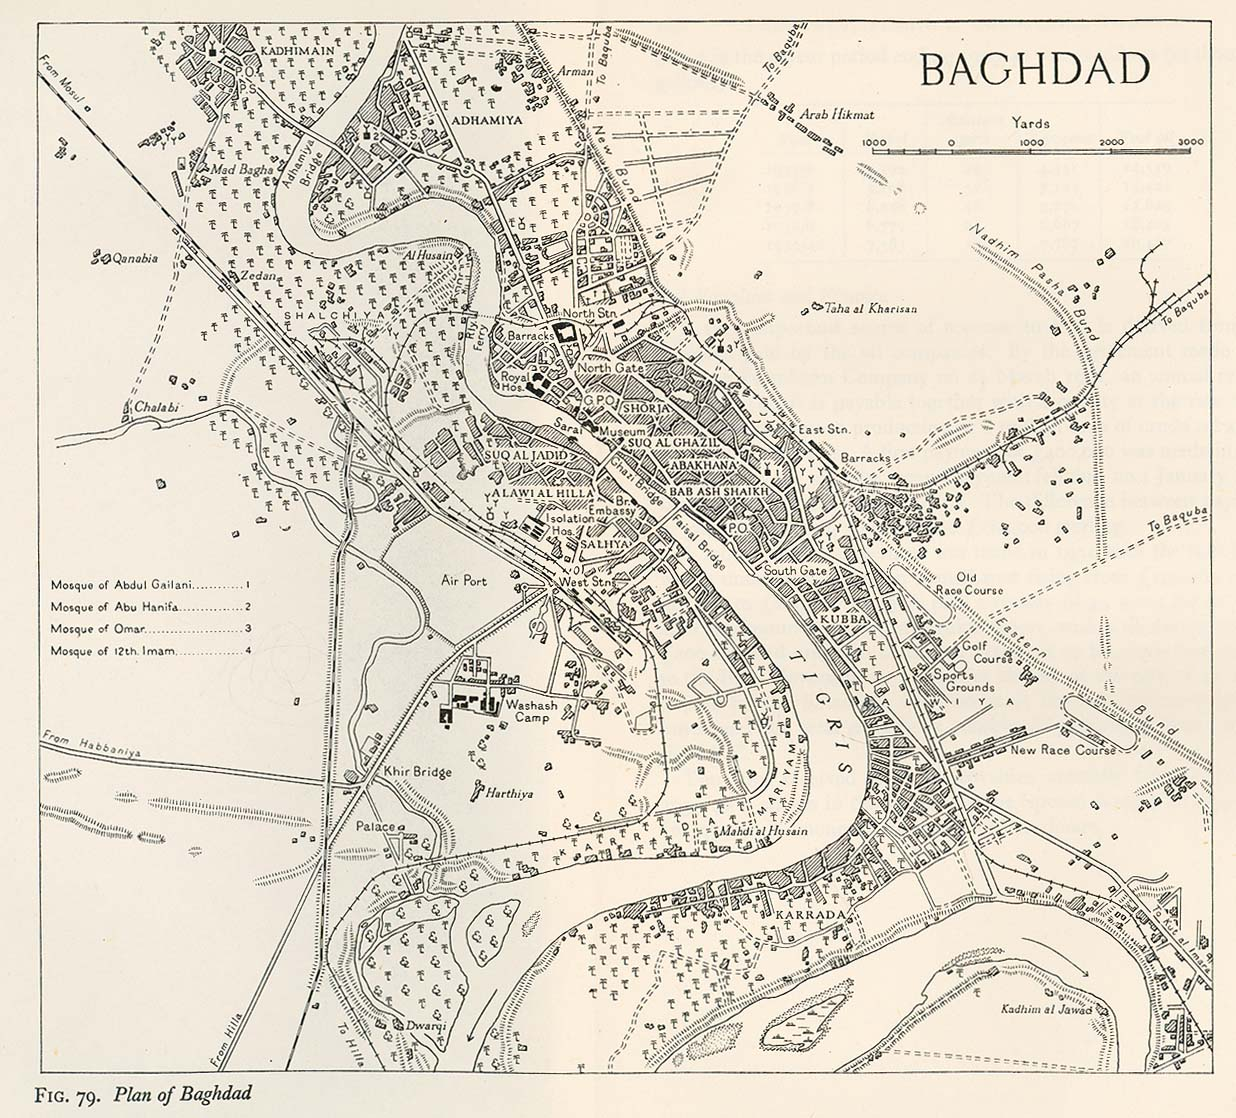 WHKMLA : Historical Atlas, Iraq Page on map of istanbul, map of mogadishu, map of hankou, map of ramallah, map of karachi, map of kabul, map of irbil, map of sulaymaniyah, map of shuwaikh port, map of jeddah, map of ormuz, map of kurdish people, map of bukhara, map of fustat, map of riyadh, map of zagros mountains, map of tel aviv, map of delhi, map of samarkand, map of beirut,